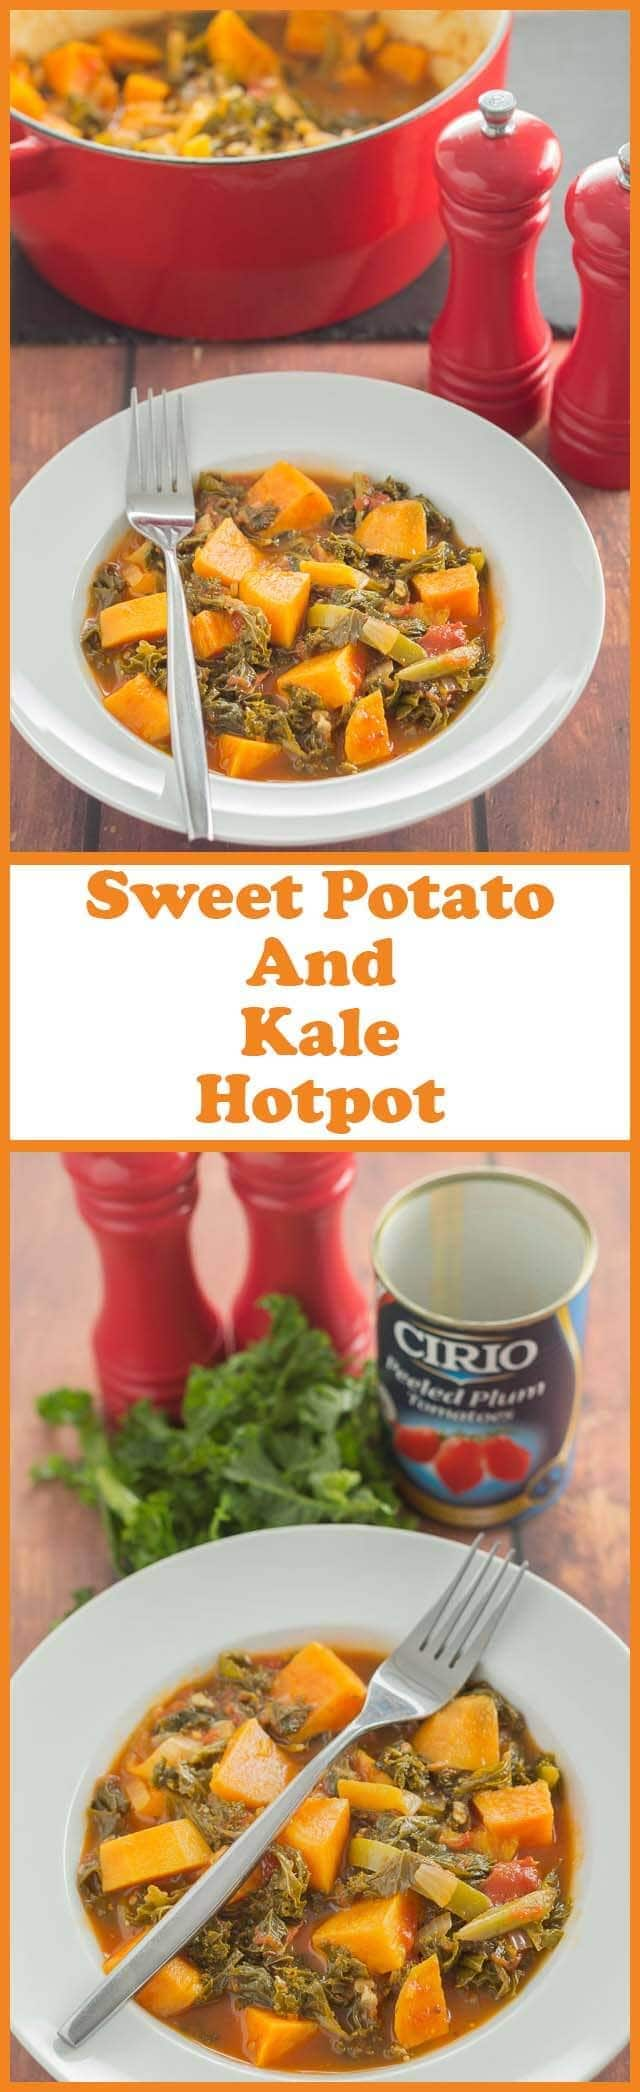 Sweet potato and kale hotpot is a quick, hearty all in one healthy meal. It's perfect for winter as you'll find this low cost vegan stew is packed full of vitamins that help keep colds and flu away! #vegan #glutenfree #paleo #sweetpotato #kale #sweetpotatocasserole